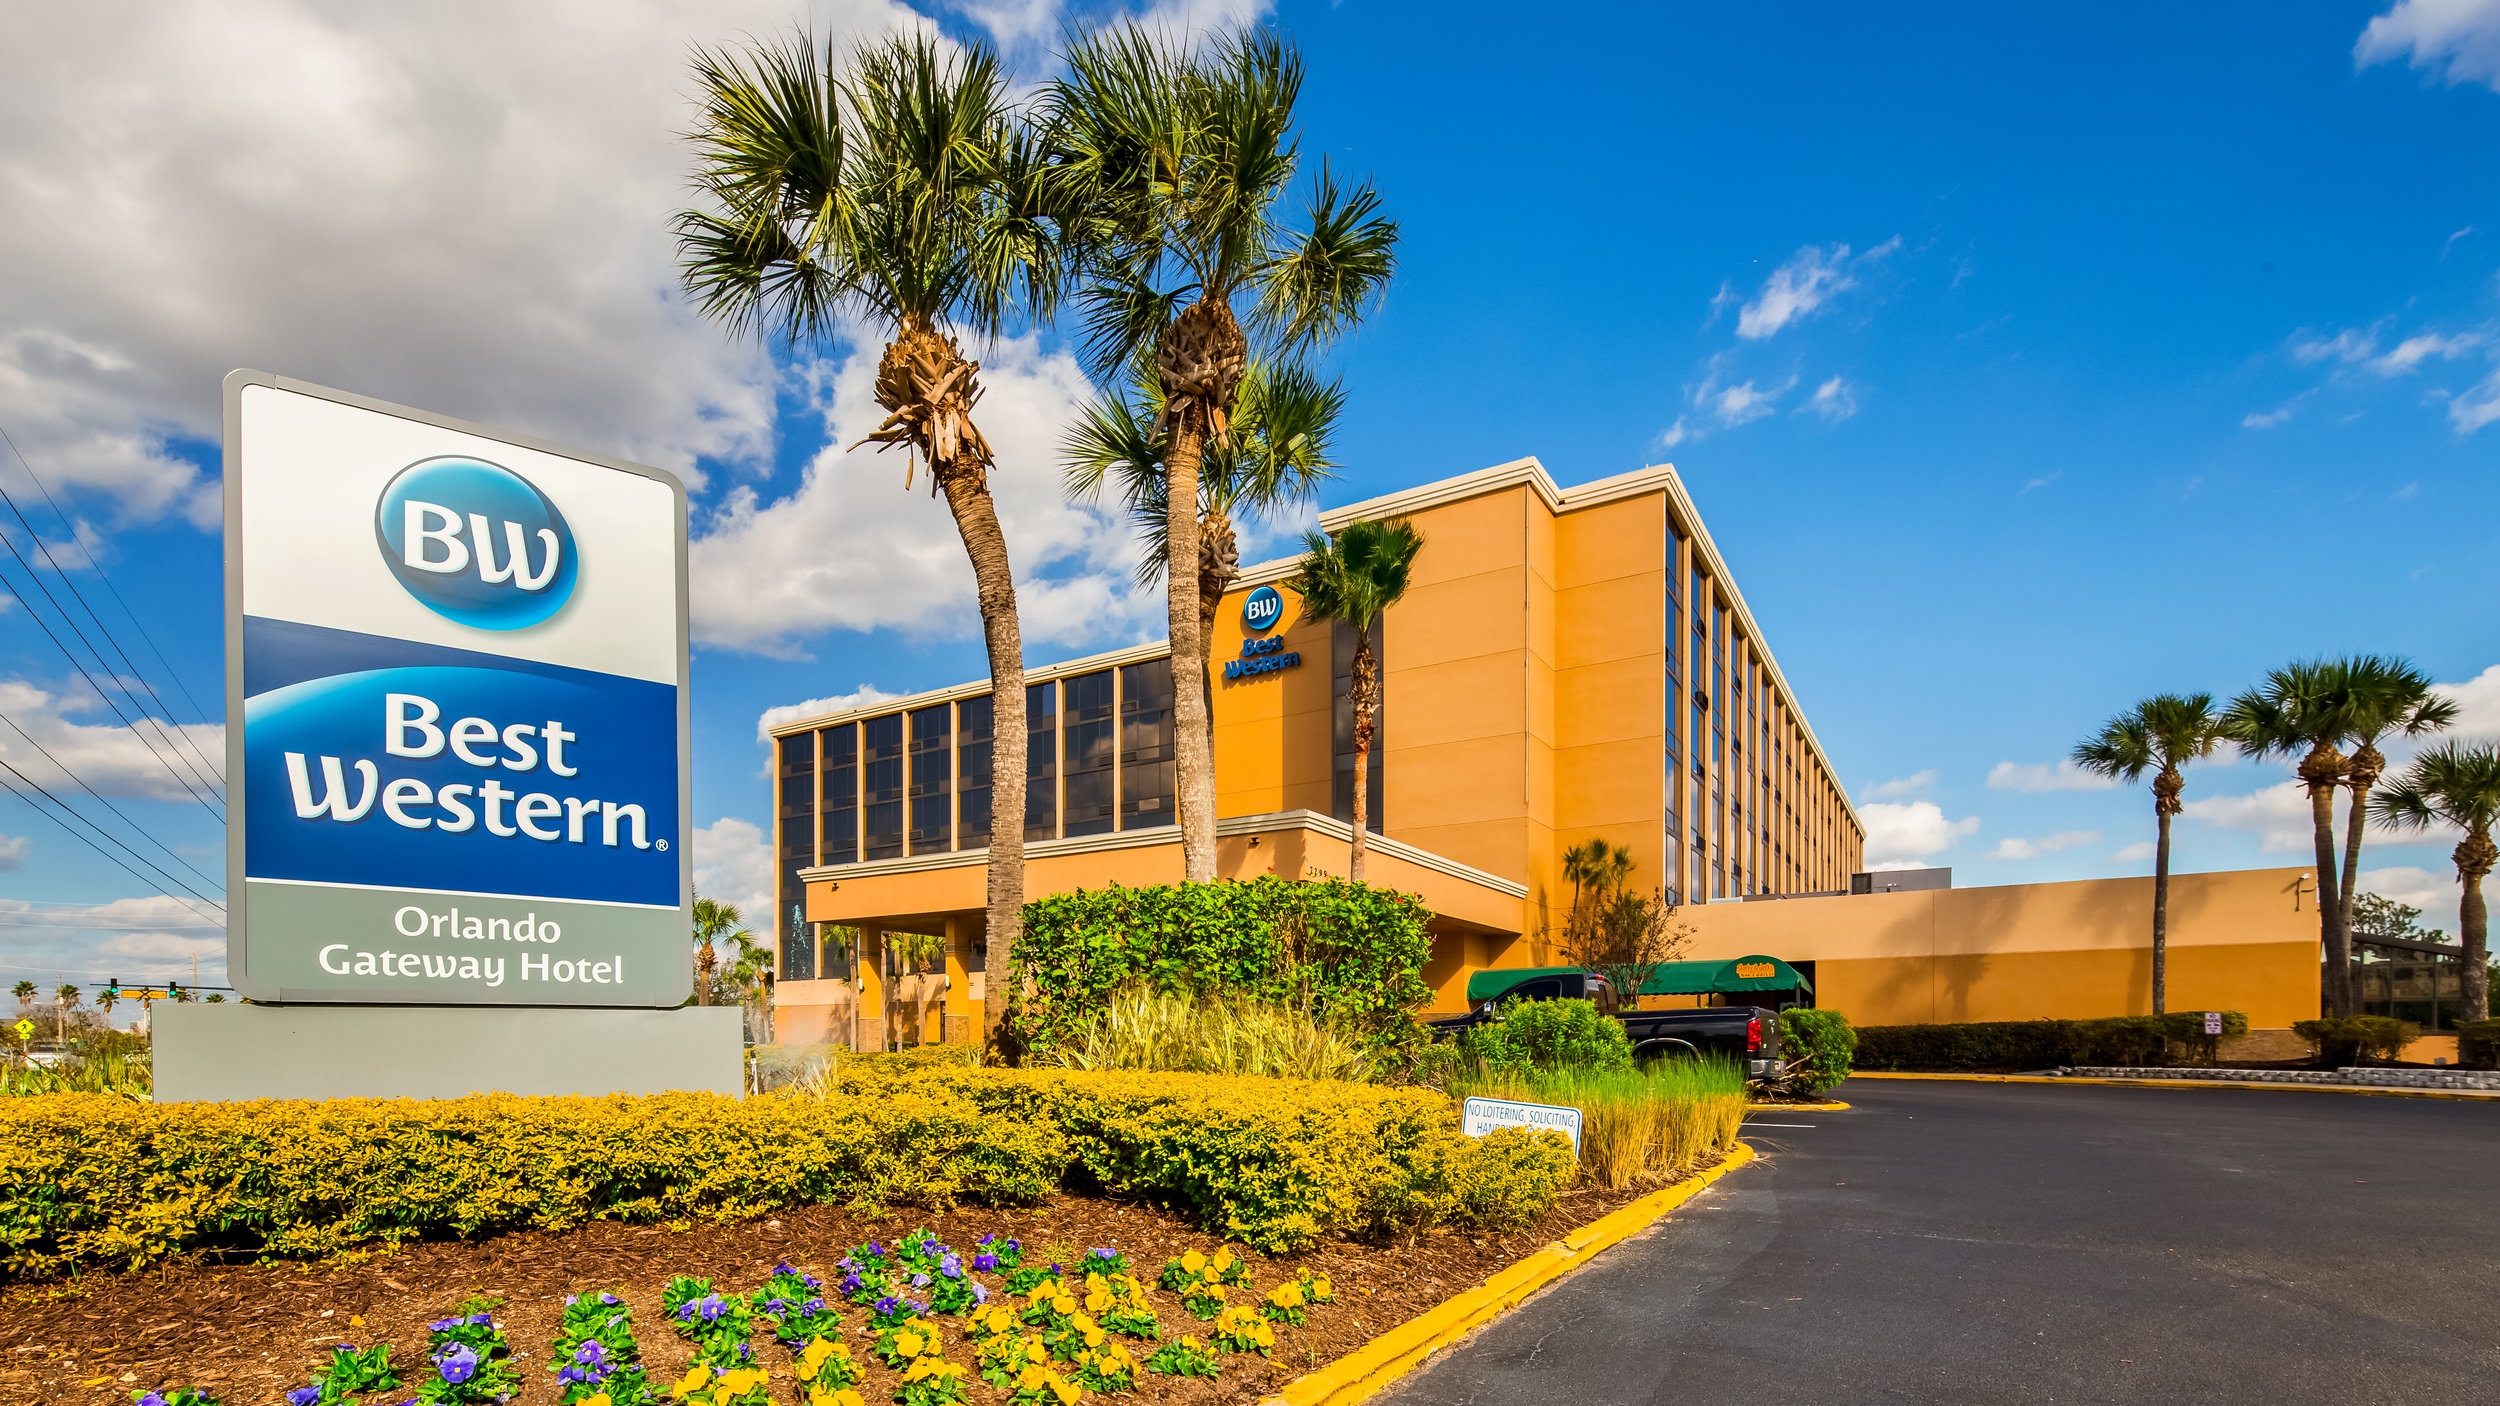 Learn More - Ready for your next vacation? Explore all Orlando has to offer from our ideally located hotel.